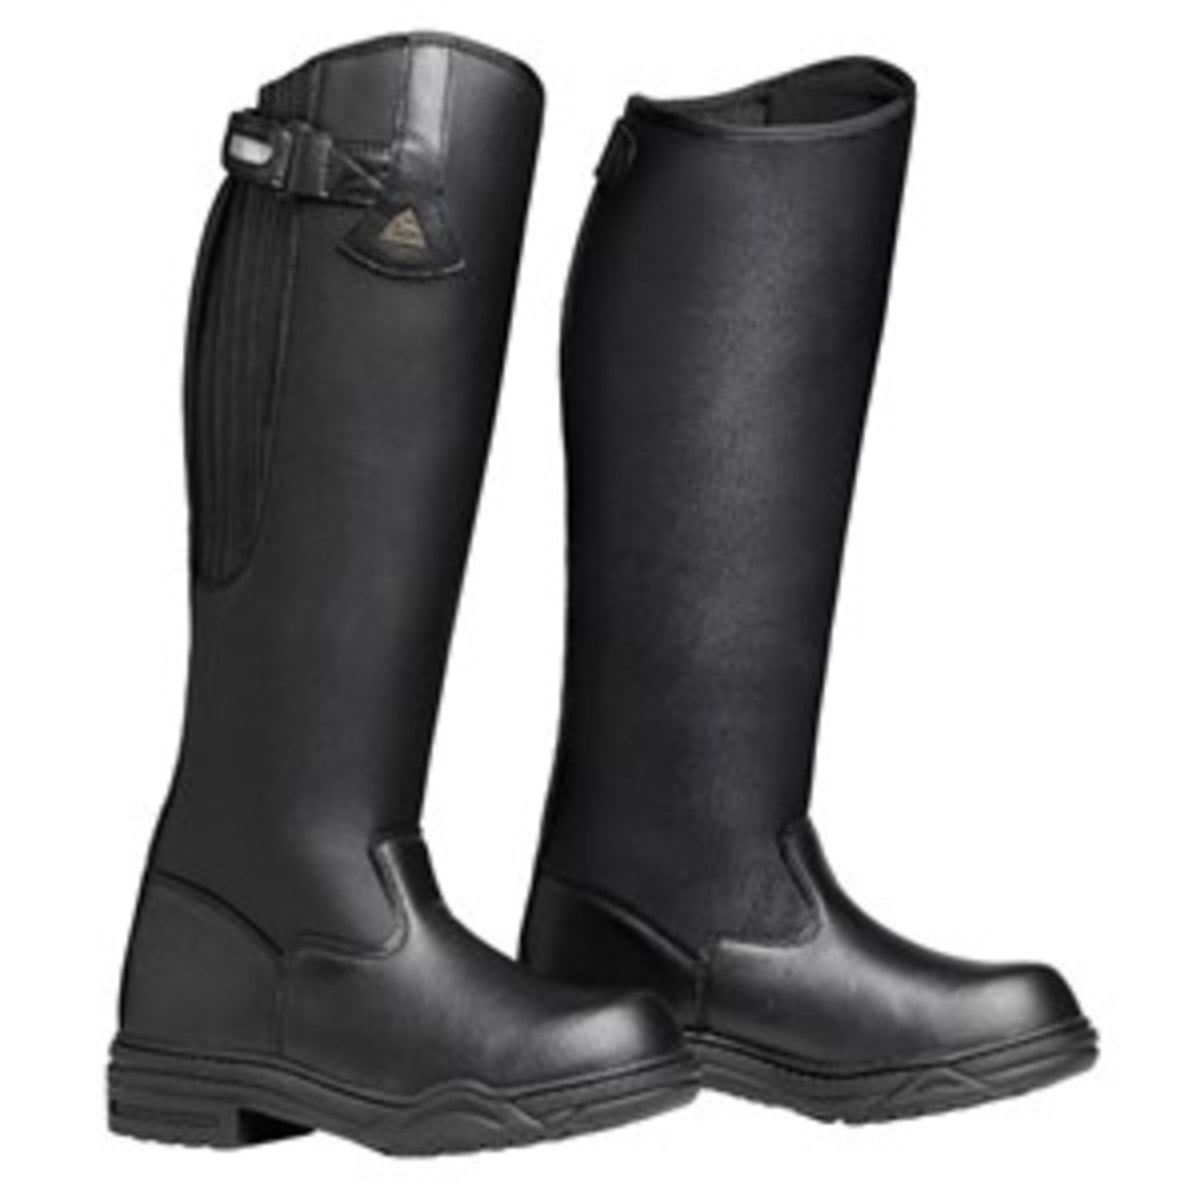 Credit: Courtesy of Mountain Horse USA Insulated boots and snug socks will  help keep your feet warm on cold fall  days. Shown are the Rimfrost Rider III boots and wool/nylon North Tech socks from Mountain Horse USA.